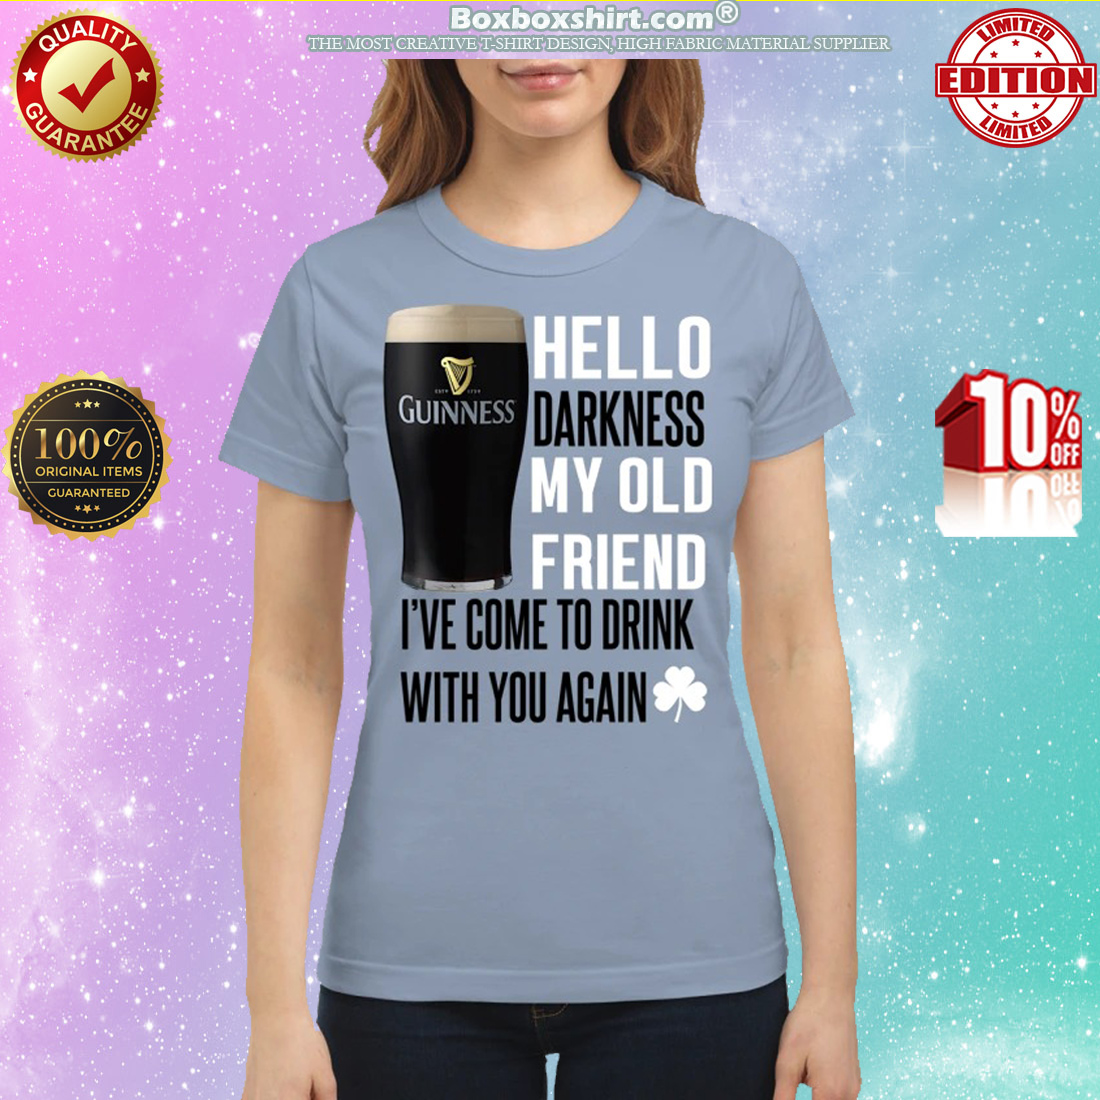 Guinness beer Hello darkness my old friend I've come to drink with you again classic shirt